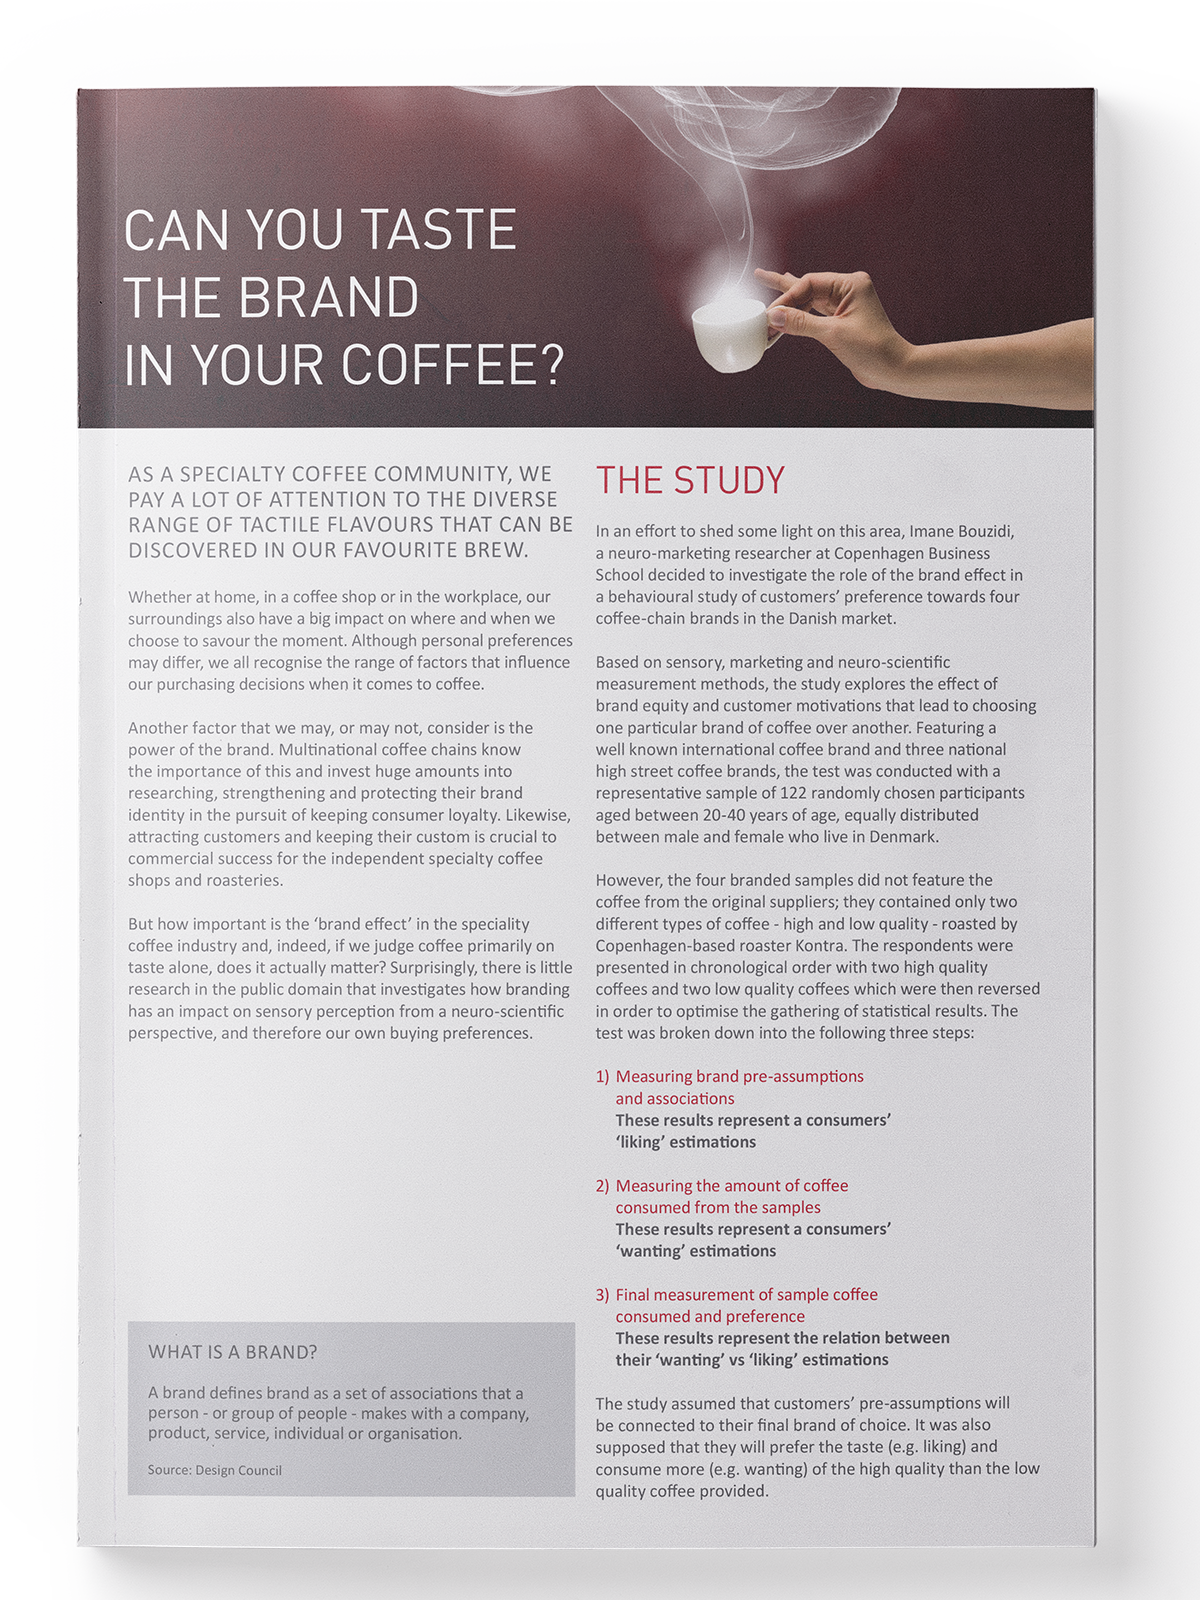 Brand Effect in Coffee  As a specialty coffee community, we pay a lot of attention to the diverse range of tactile flavours that can be discovered in our favourite brew.  Whether at home, in a coffee shop or in the workplace, our surroundings also have a big impact on where and when we choose to savour the moment. Although personal preferences may differ, we all recognize the range of factors that in influence our purchasing decisions when it comes to coffee.   Webinar & Article on SCA News